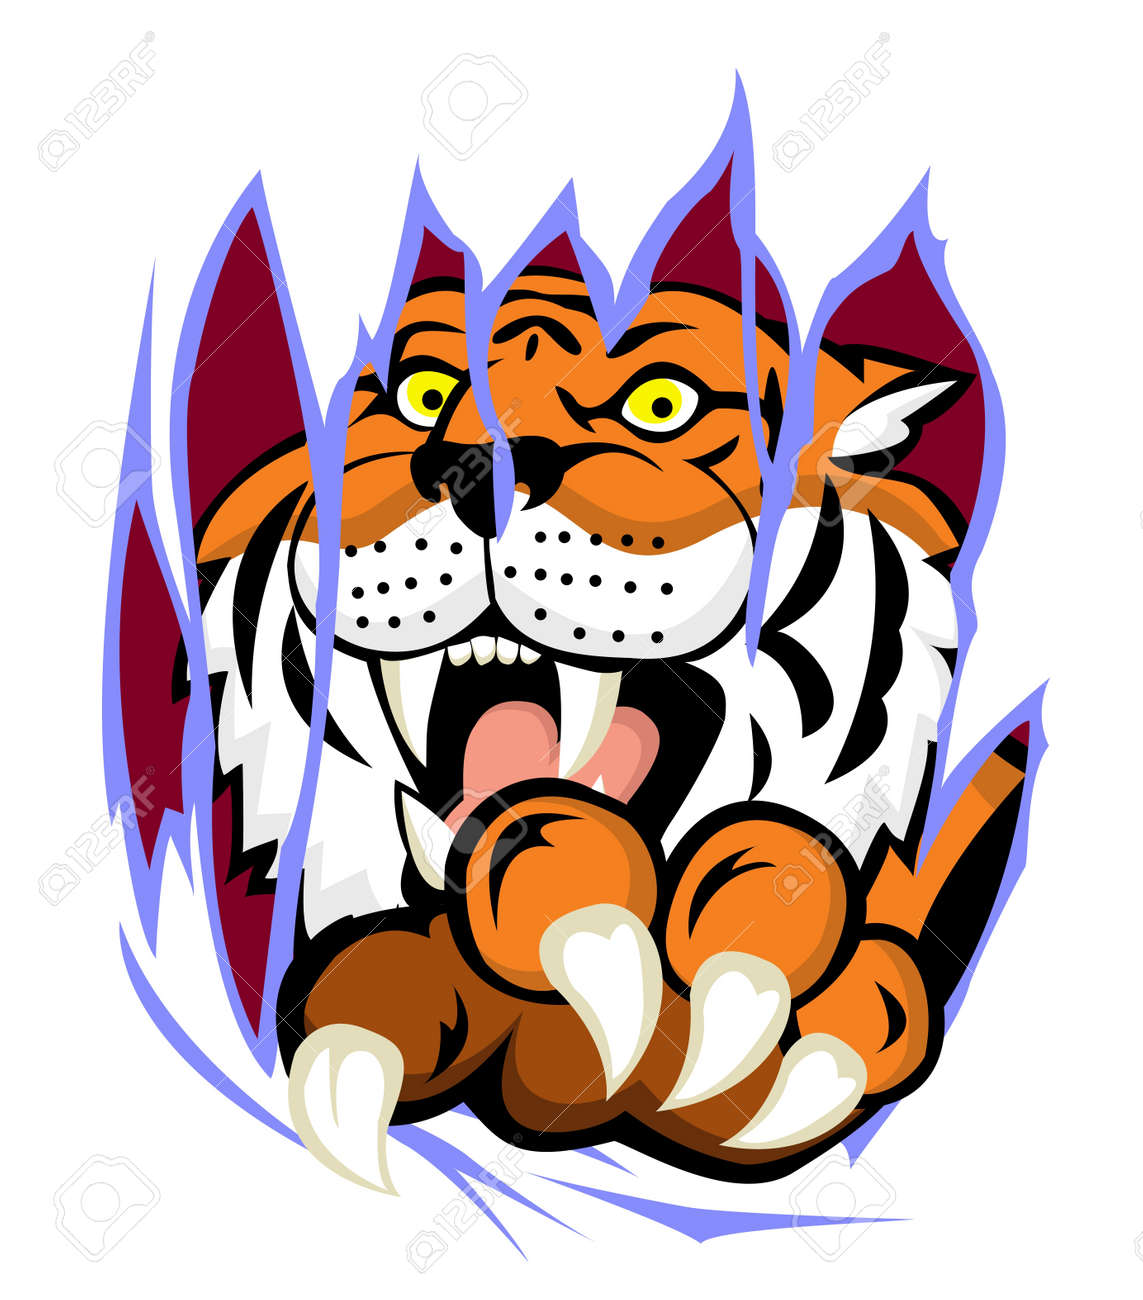 Tiger with claw tearing the background - 13984217